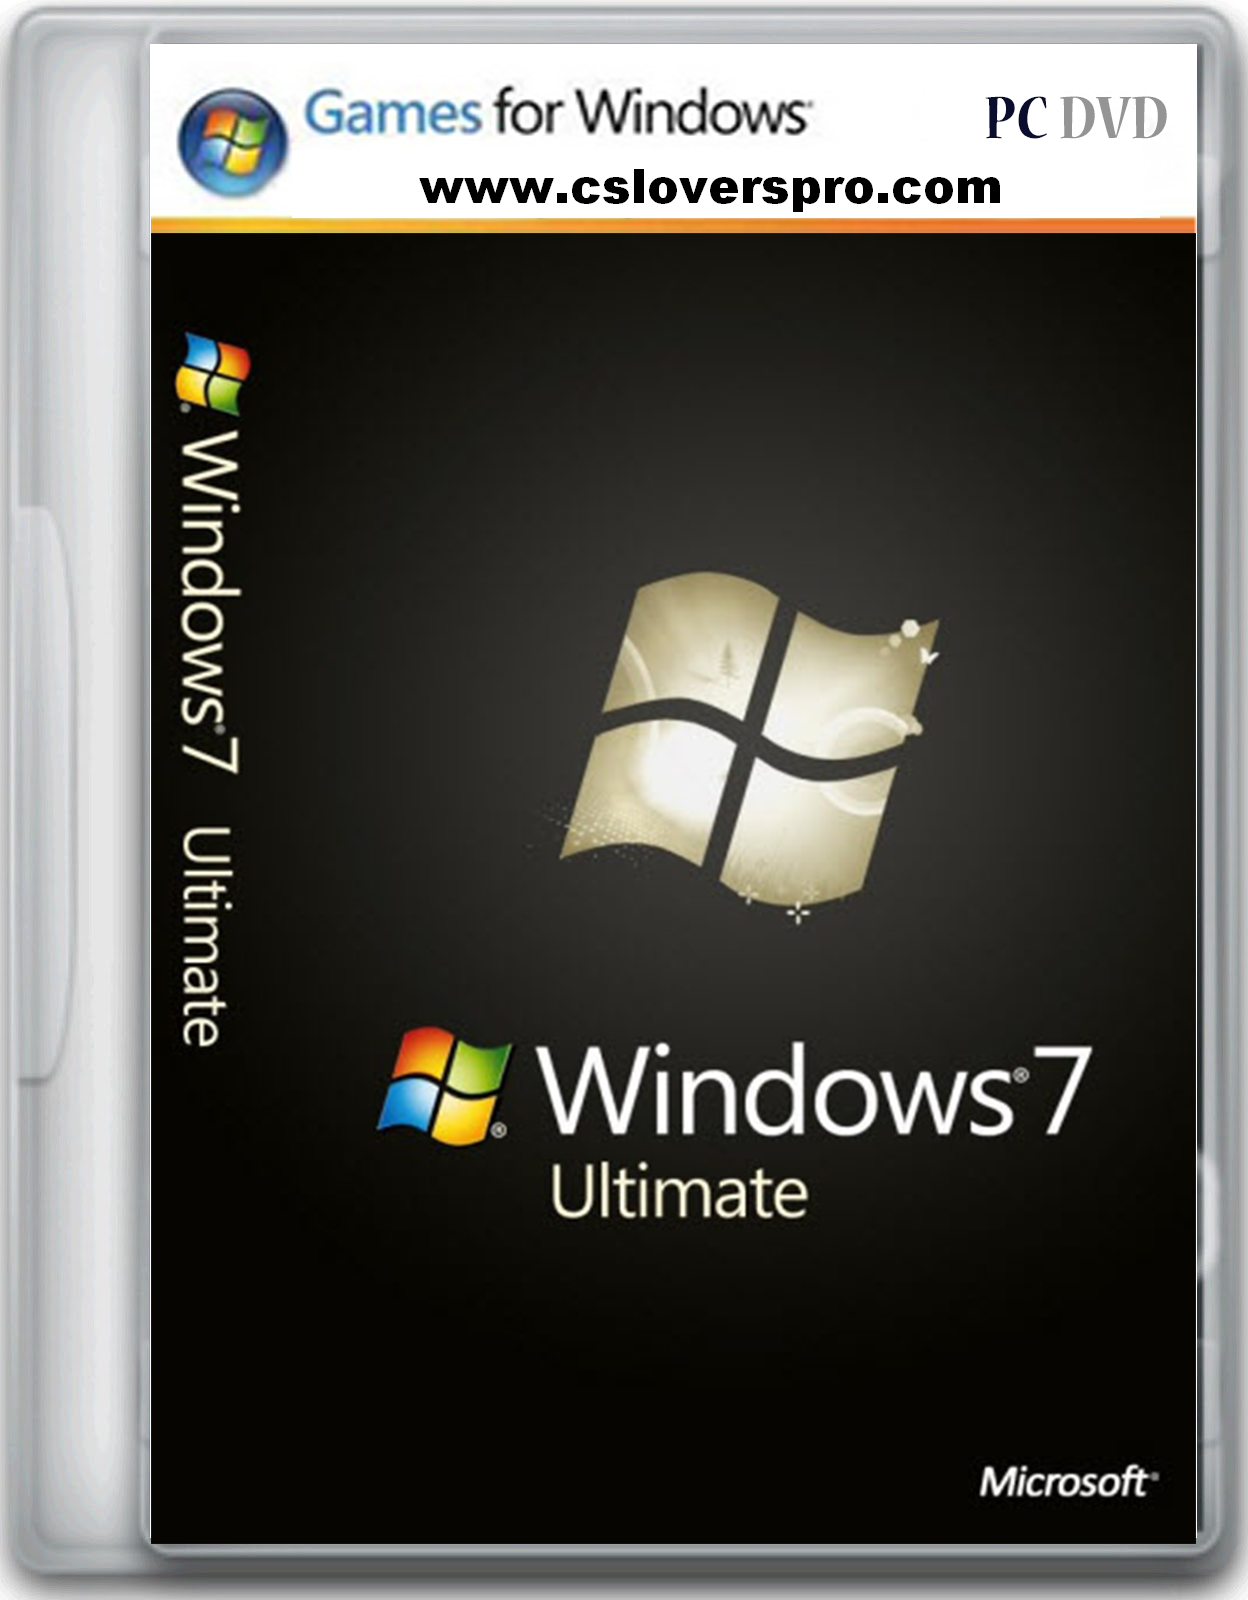 Hindi typing software free download full version for windows 7